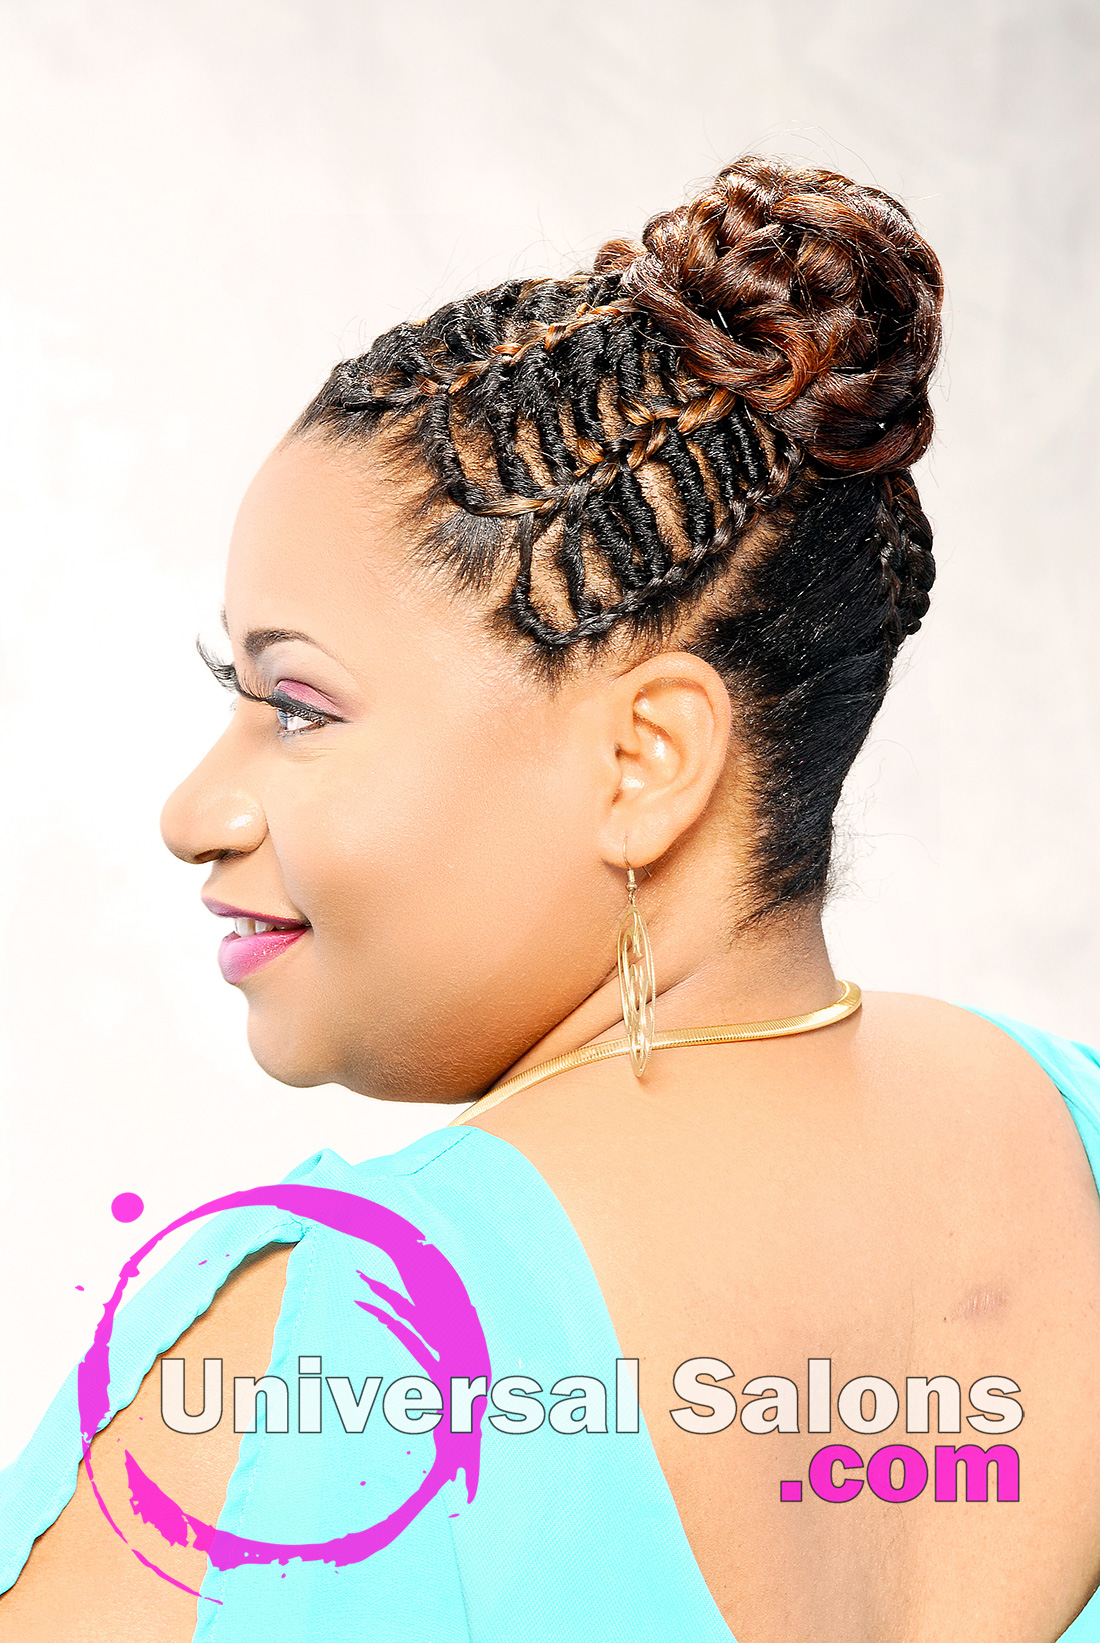 Twisted Links and Inverted Braids Hairstyle from Pam Webster